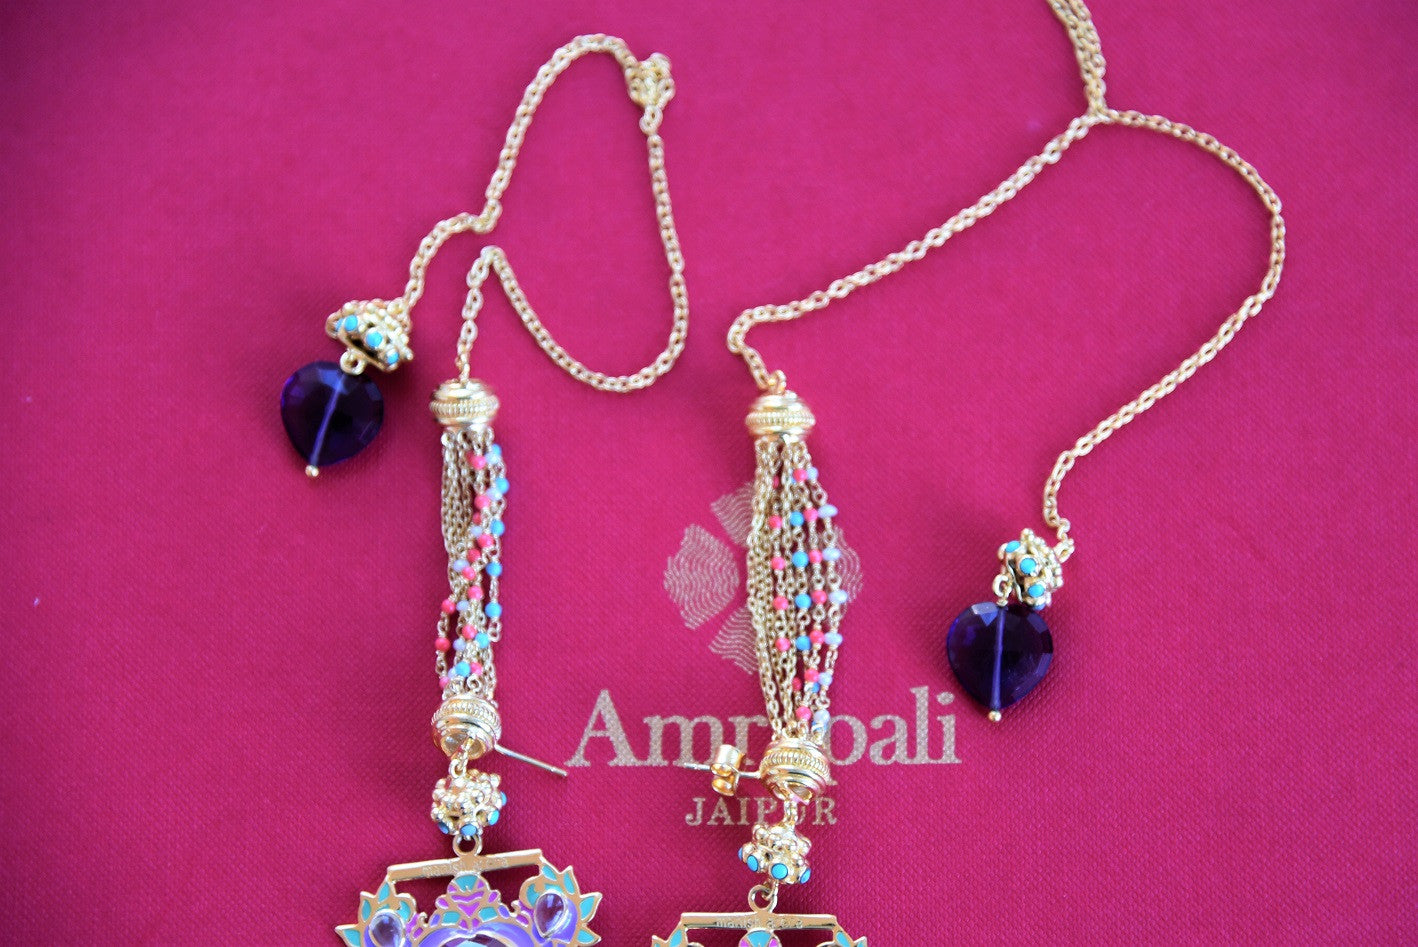 Gold plated silver Enamelled glass and pearl fashion Indian earring. Ideal match with Indian outfit for wedding parties.-beaded string